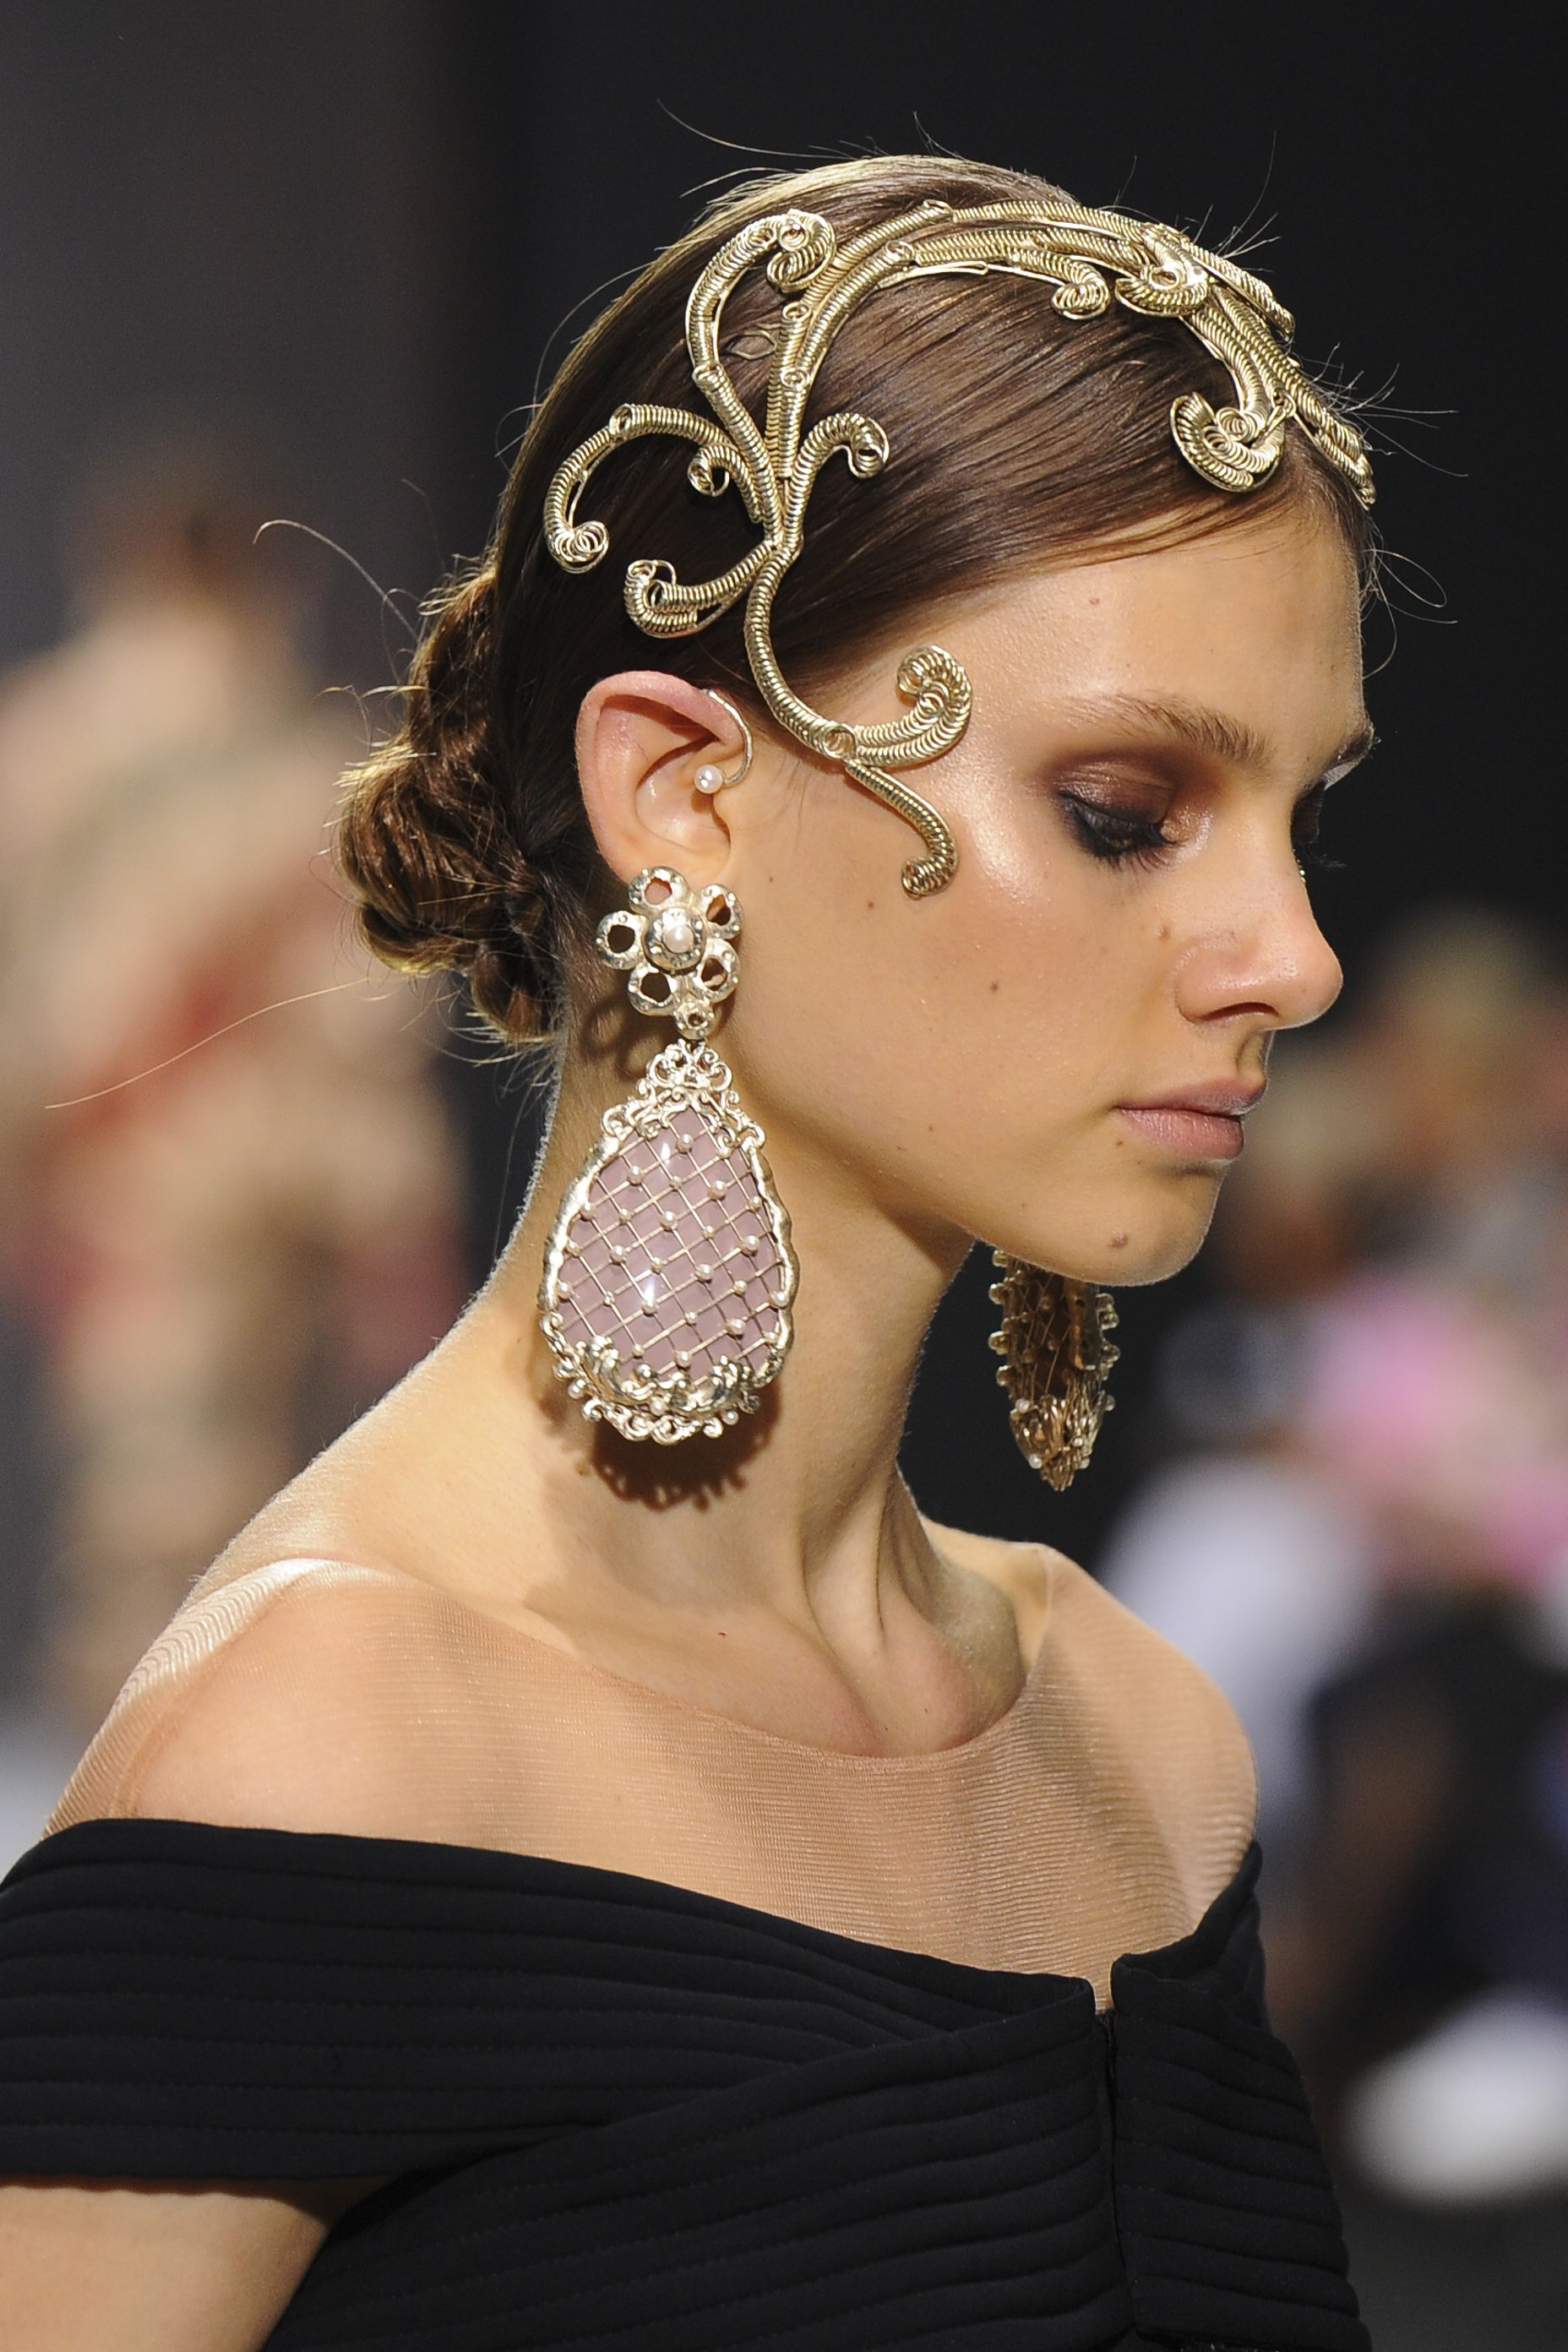 Pin by Ann on biubiubiu Haute couture jewelry, Headpiece